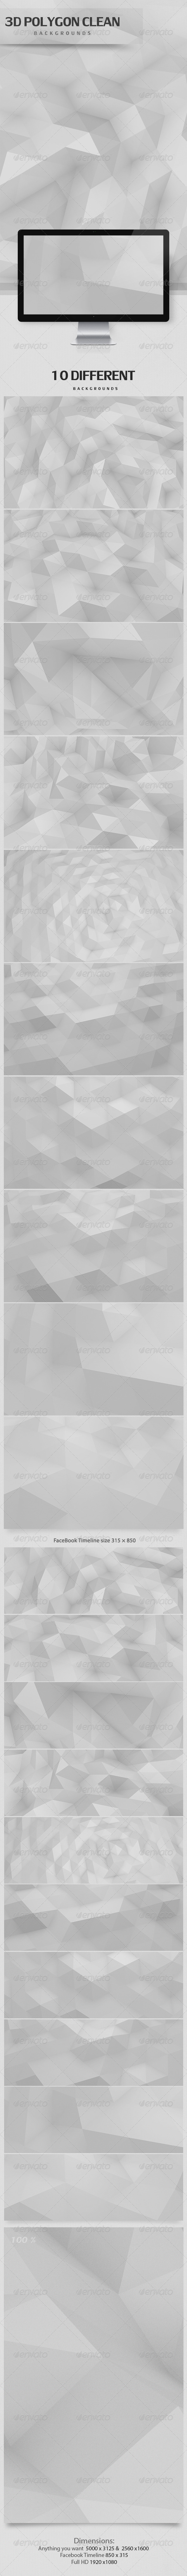 3d-Polygon-Clean-Backgrounds-GraphicRiver-3d-Polygon-Clean-Backgrounds-Dimension-wallpaper-wp3401338